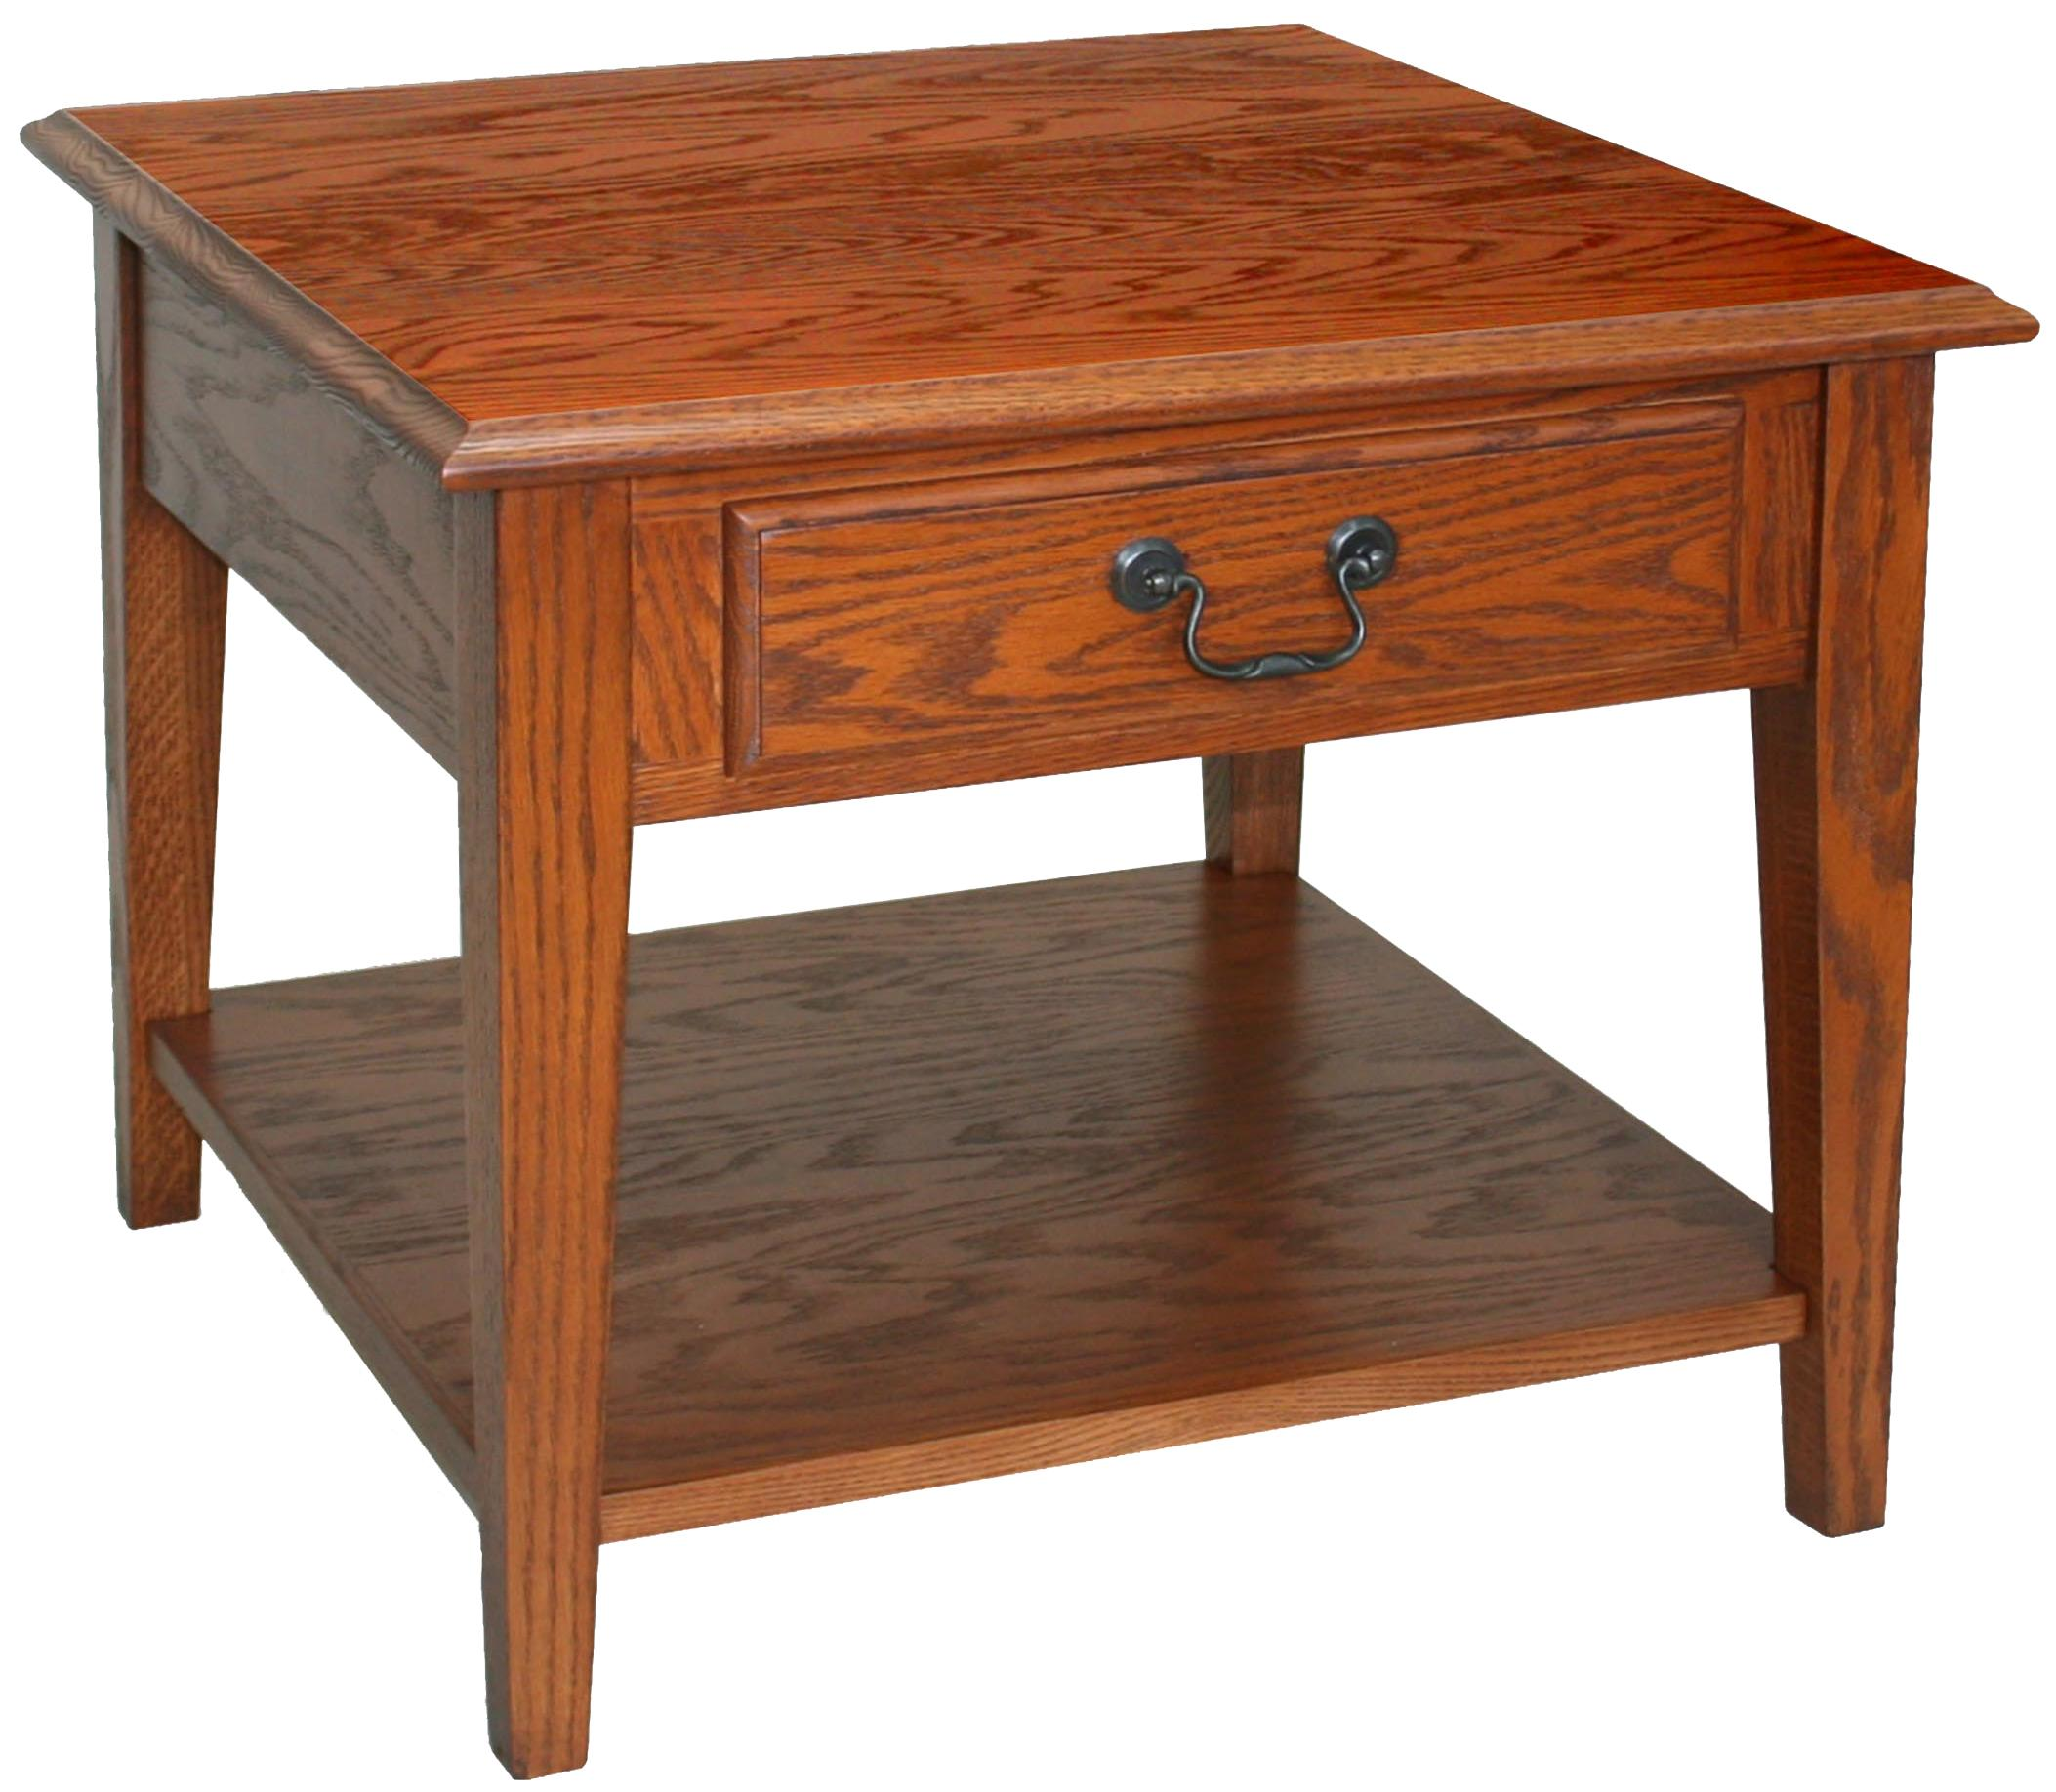 Favorite Finds Recliner Coffee Table by Leick Furniture at Lucas Furniture & Mattress